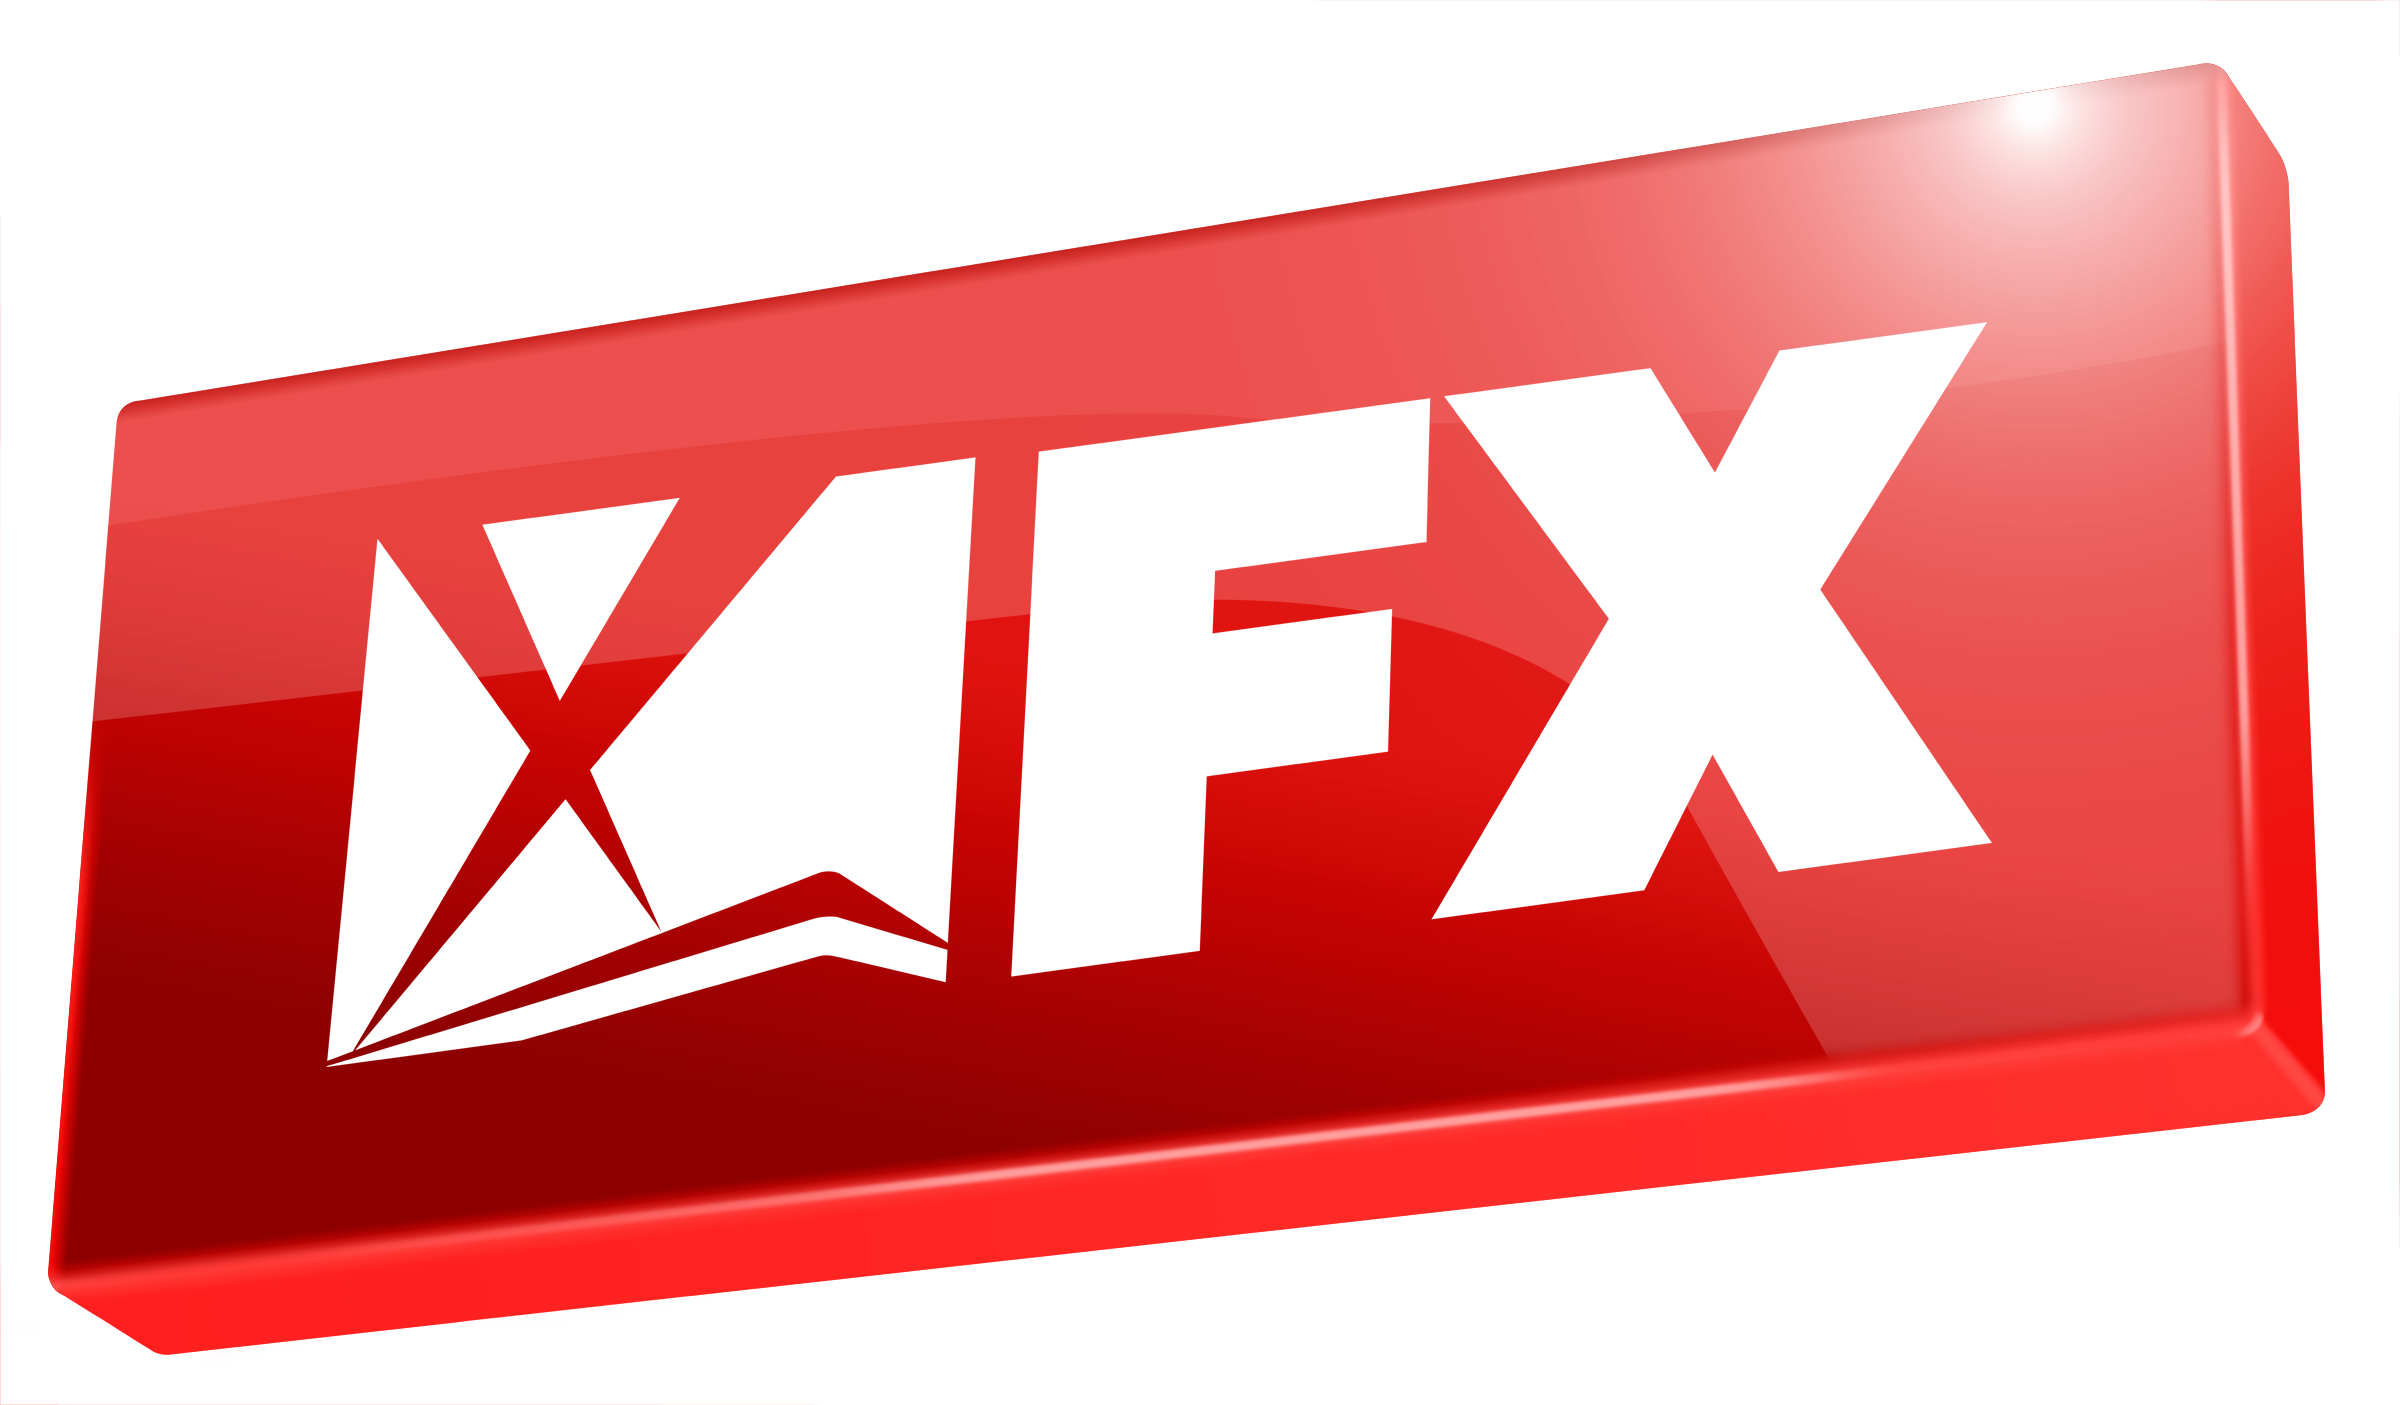 fx tv show ratings (updated 11/15/18) - canceled tv shows - tv